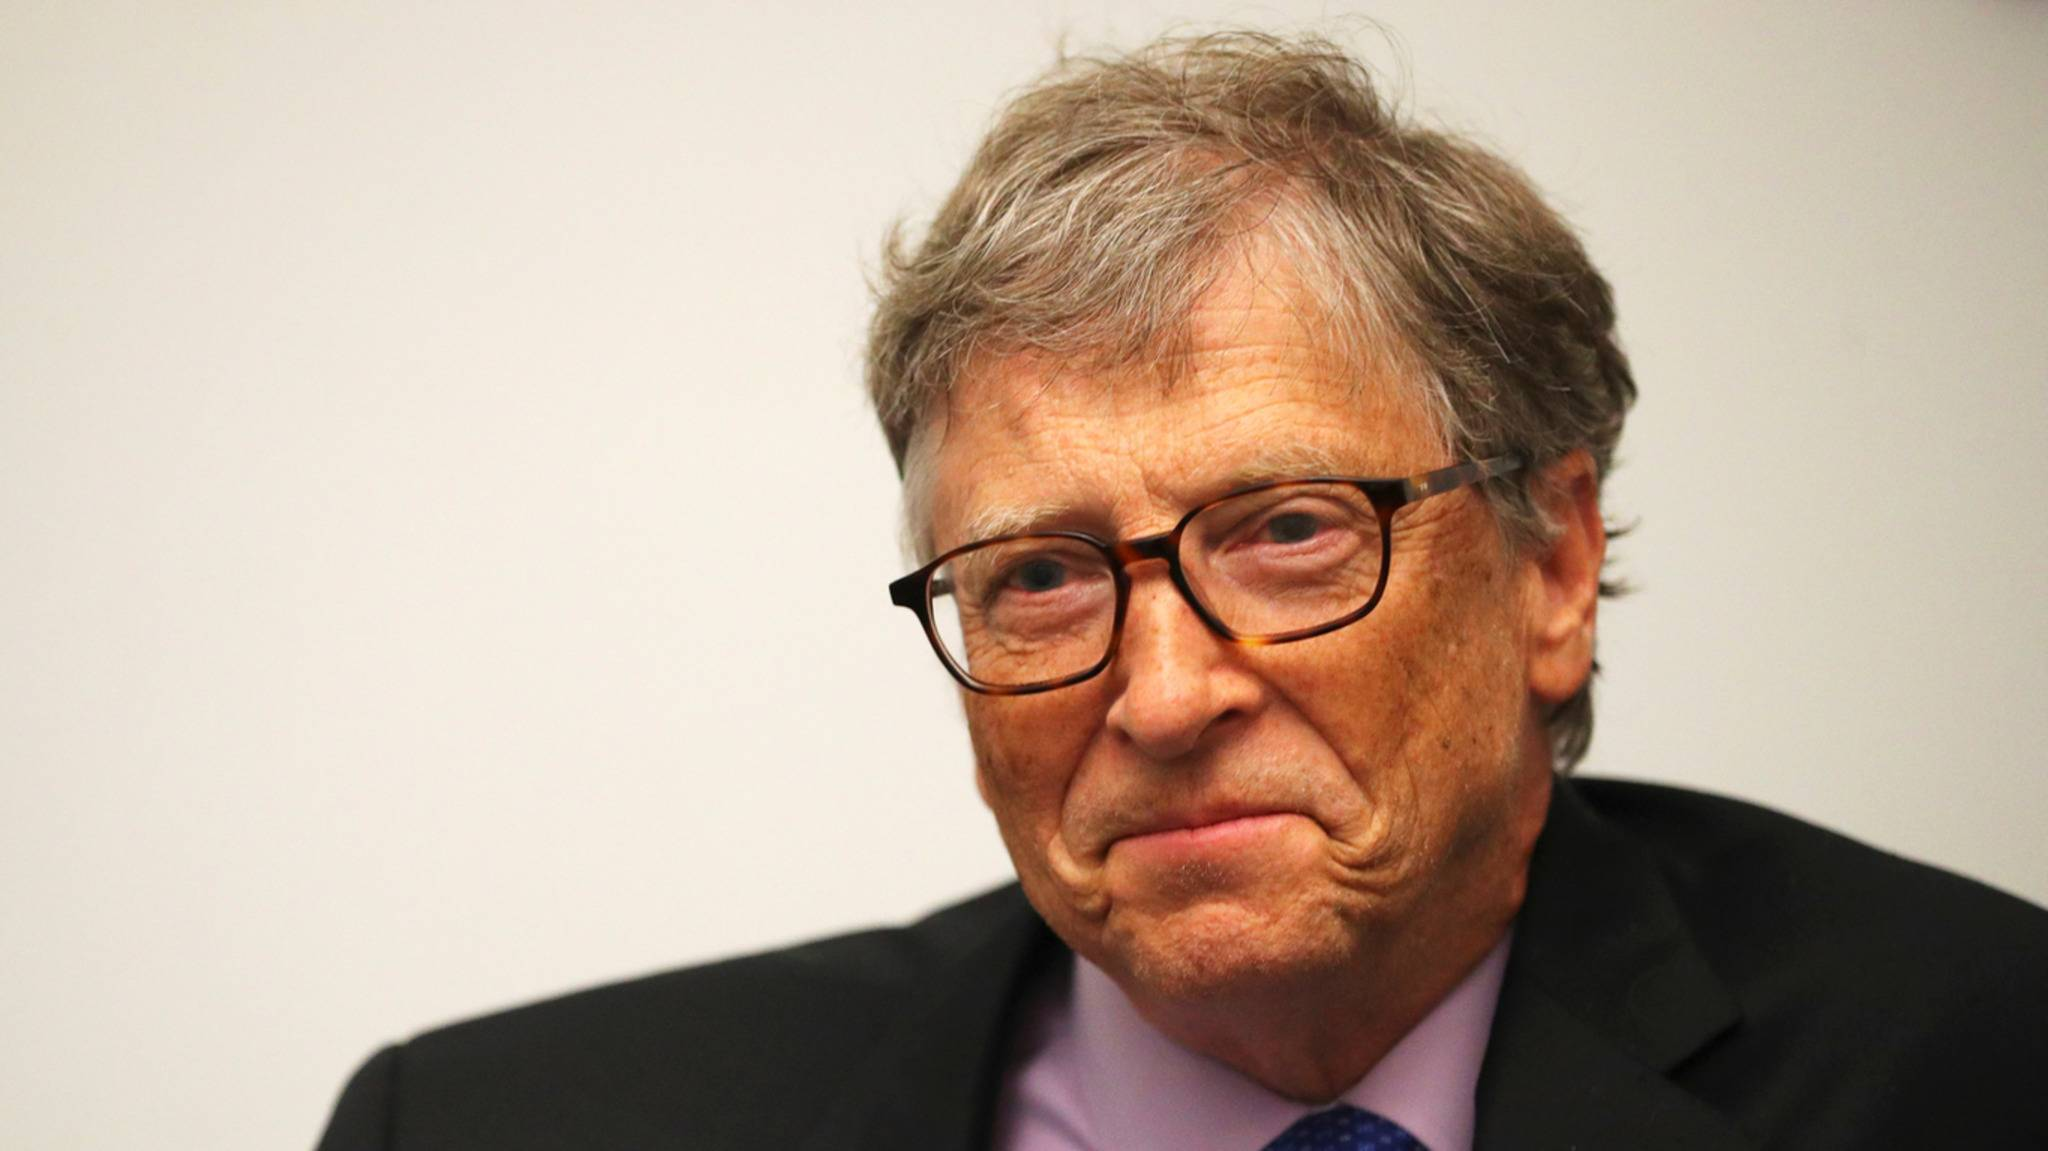 bill-gates-interview-reuters